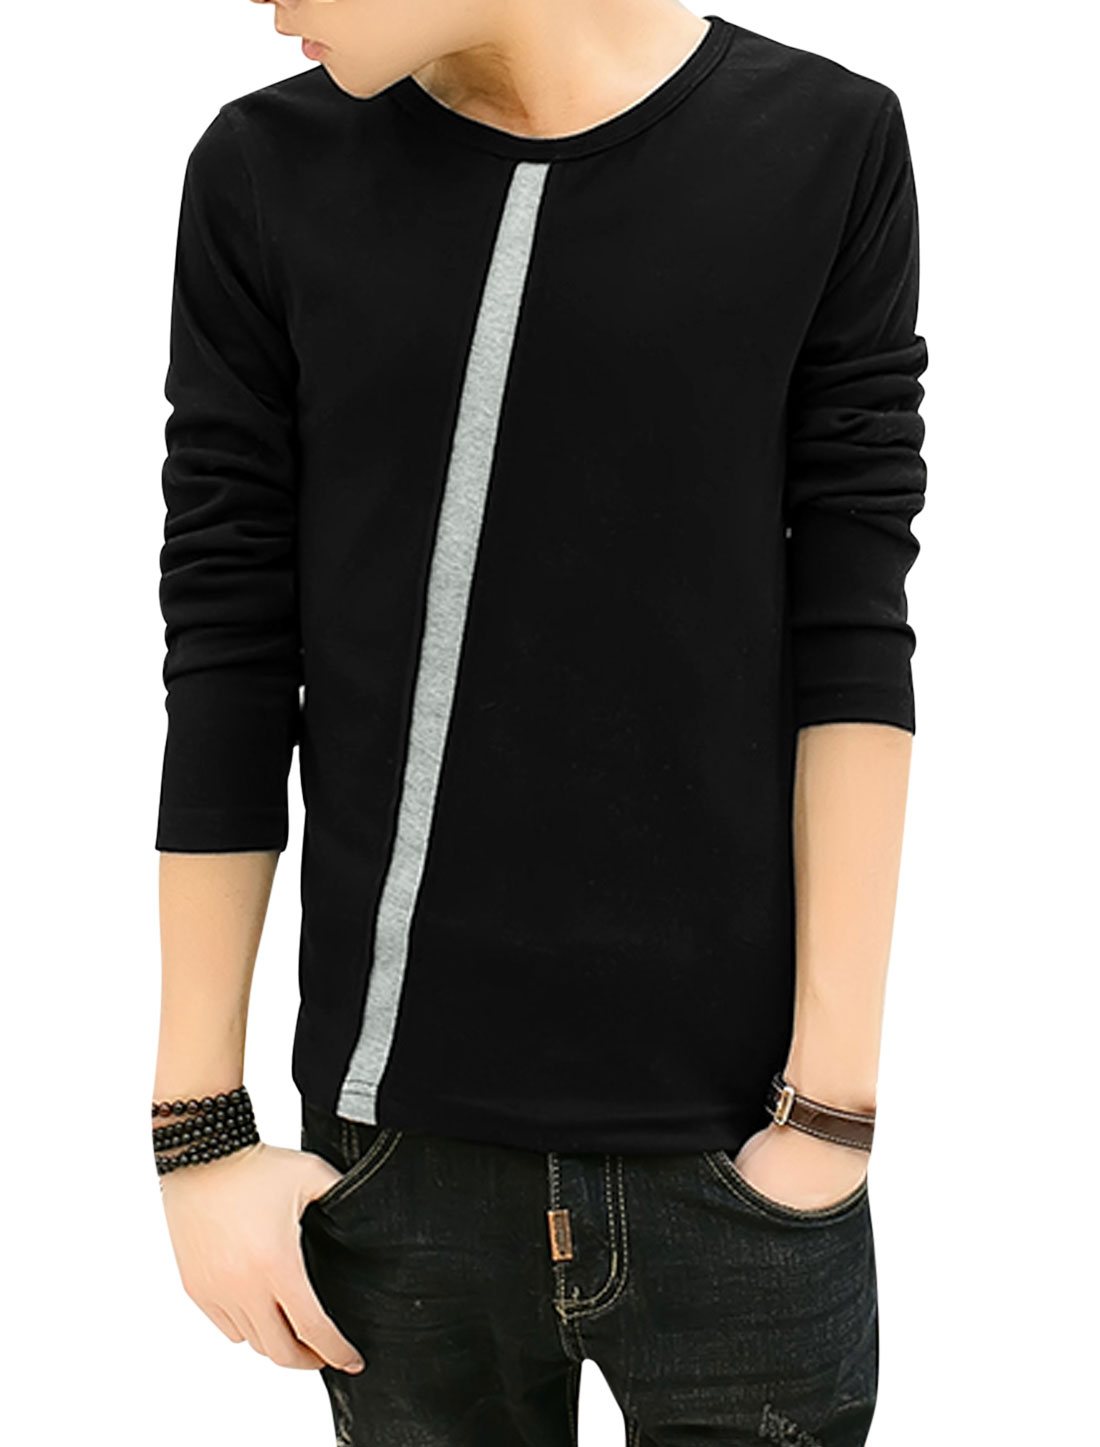 Man Inclined Stripe Design Long Sleeves Round Neck Tee Black S